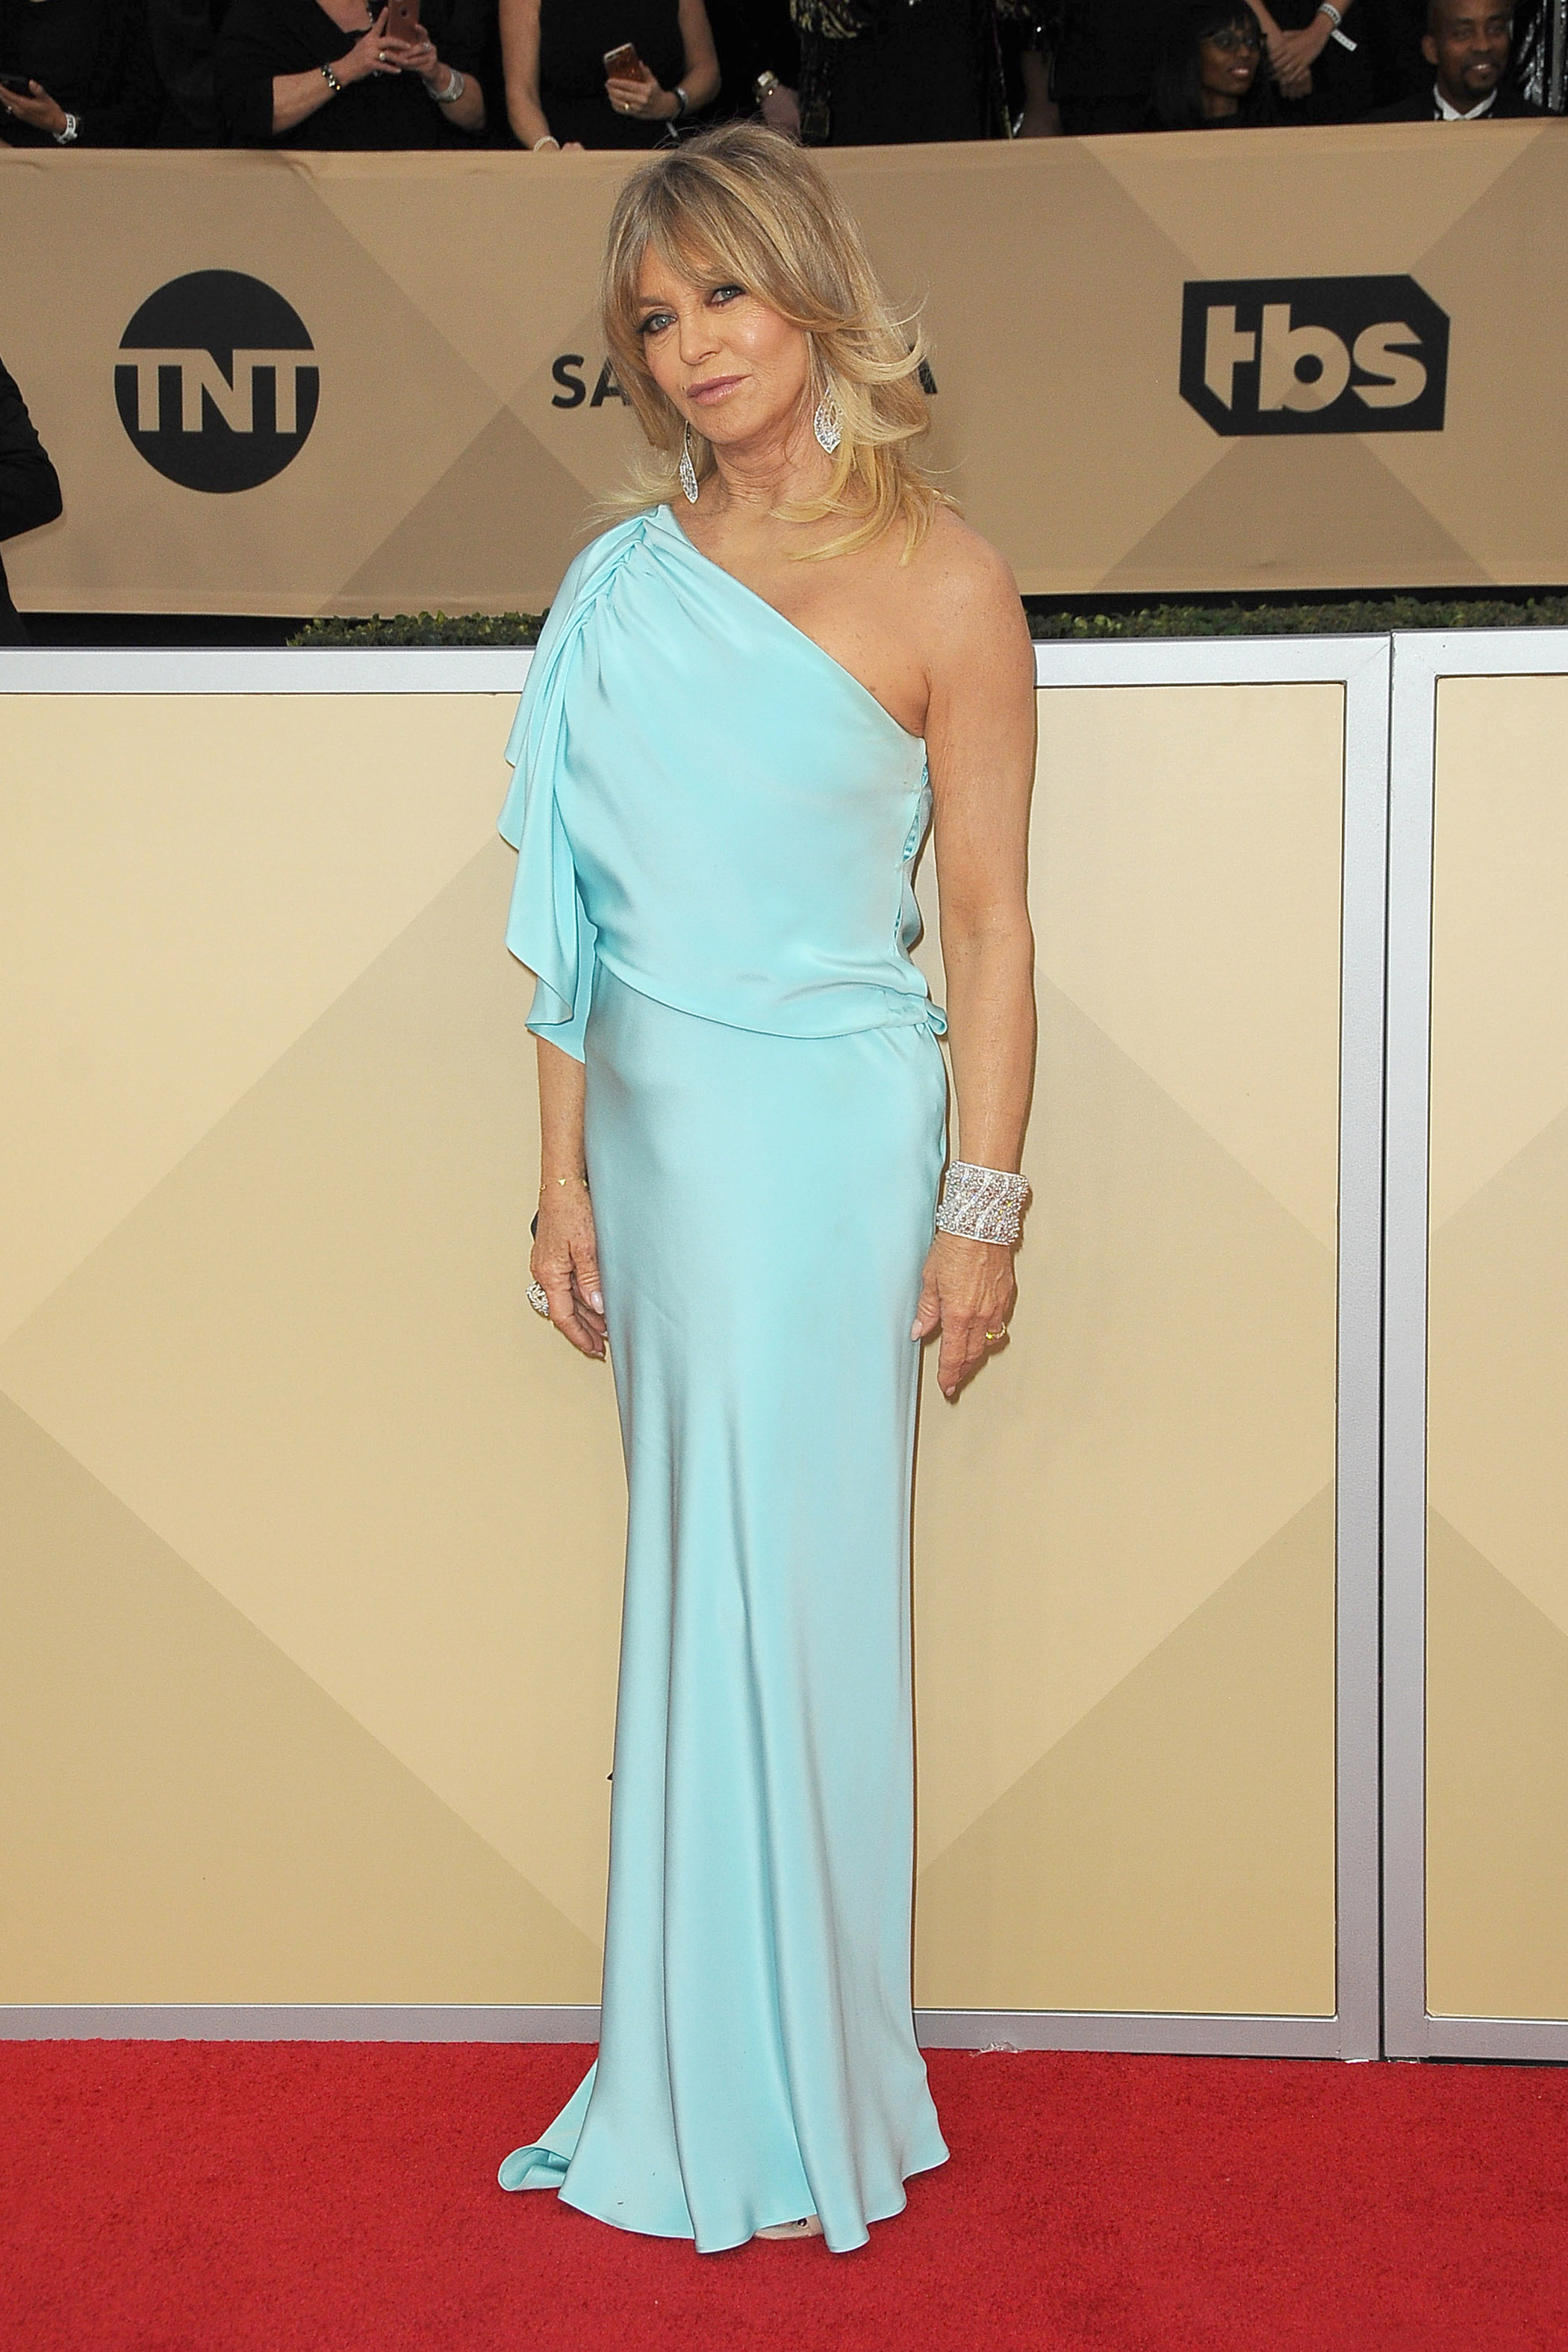 Arrivals for the 24th Annual Screen Actors Guild Awards, held at the Shrine Exposition Center in Los Angeles, California <P> Pictured: Goldie Hawn <B>Ref: SPL1649120  210118  </B><BR/> Picture by: Splash News<BR/> </P><P> <B>Splash News and Pictures</B><BR/> Los Angeles:	310-821-2666<BR/> New York:	212-619-2666<BR/> London:	870-934-2666<BR/> <span id=